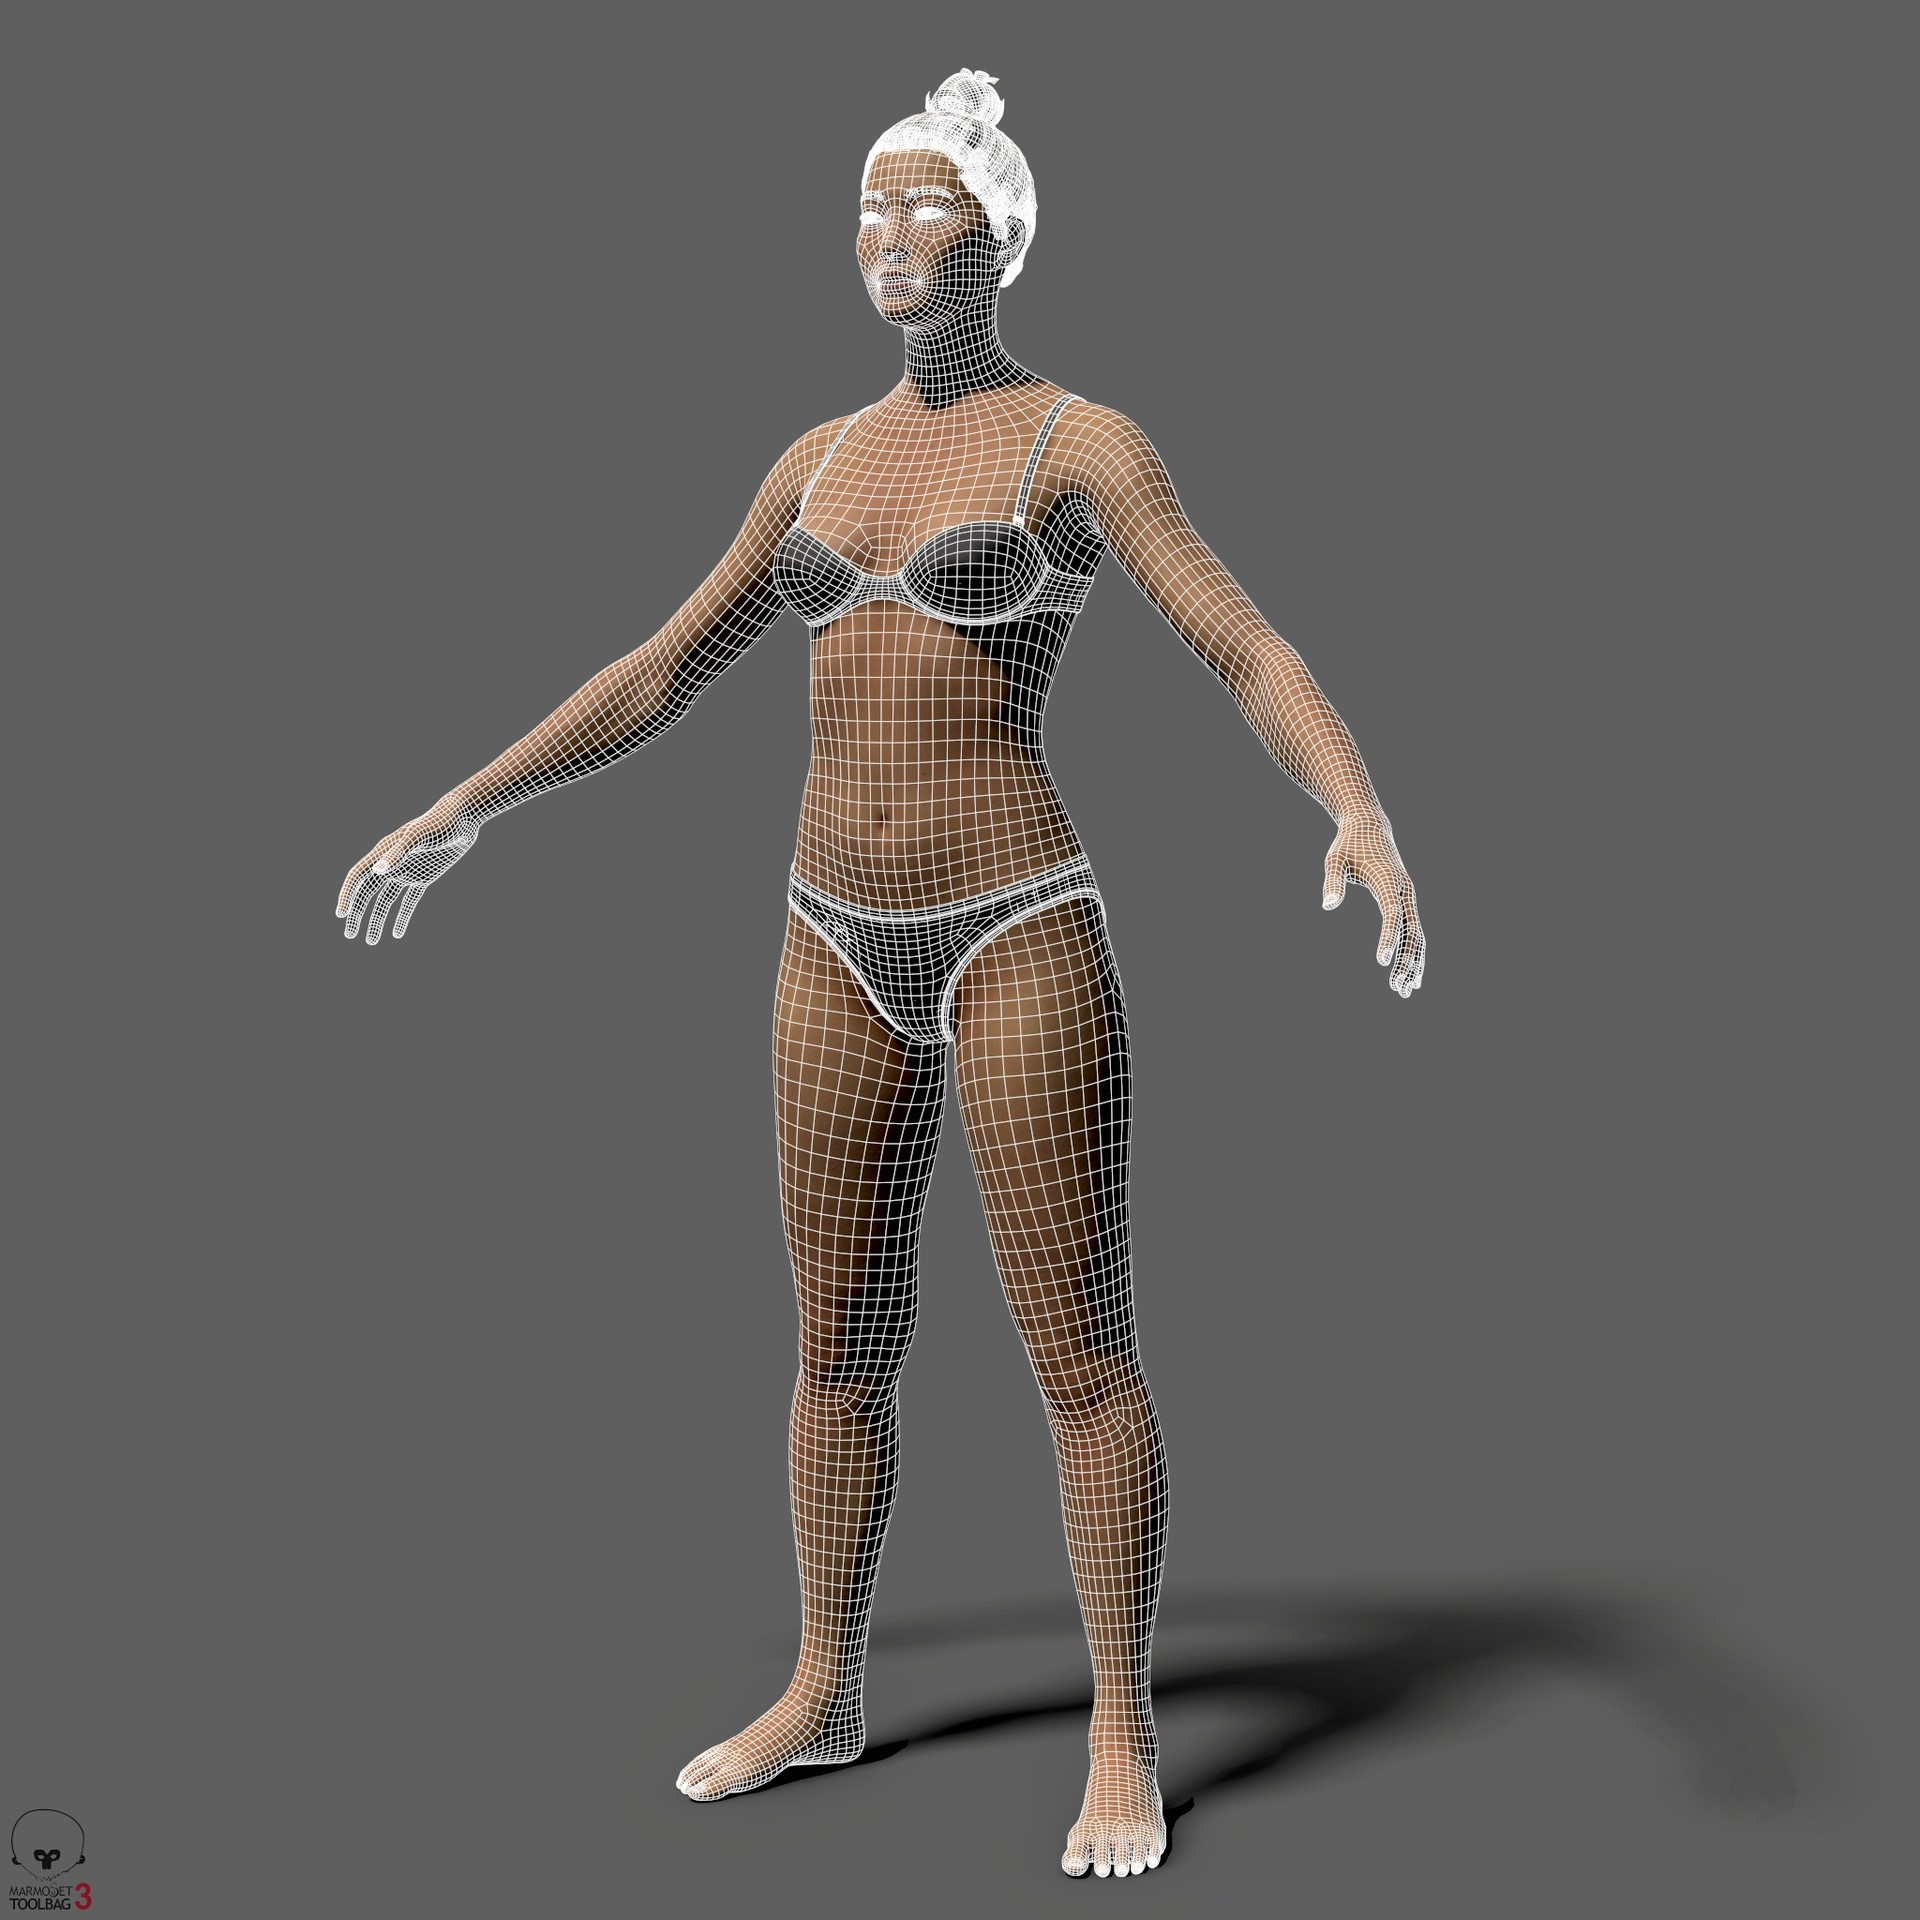 Alex lashko averageasianfemalebody by alexlashko wires 01